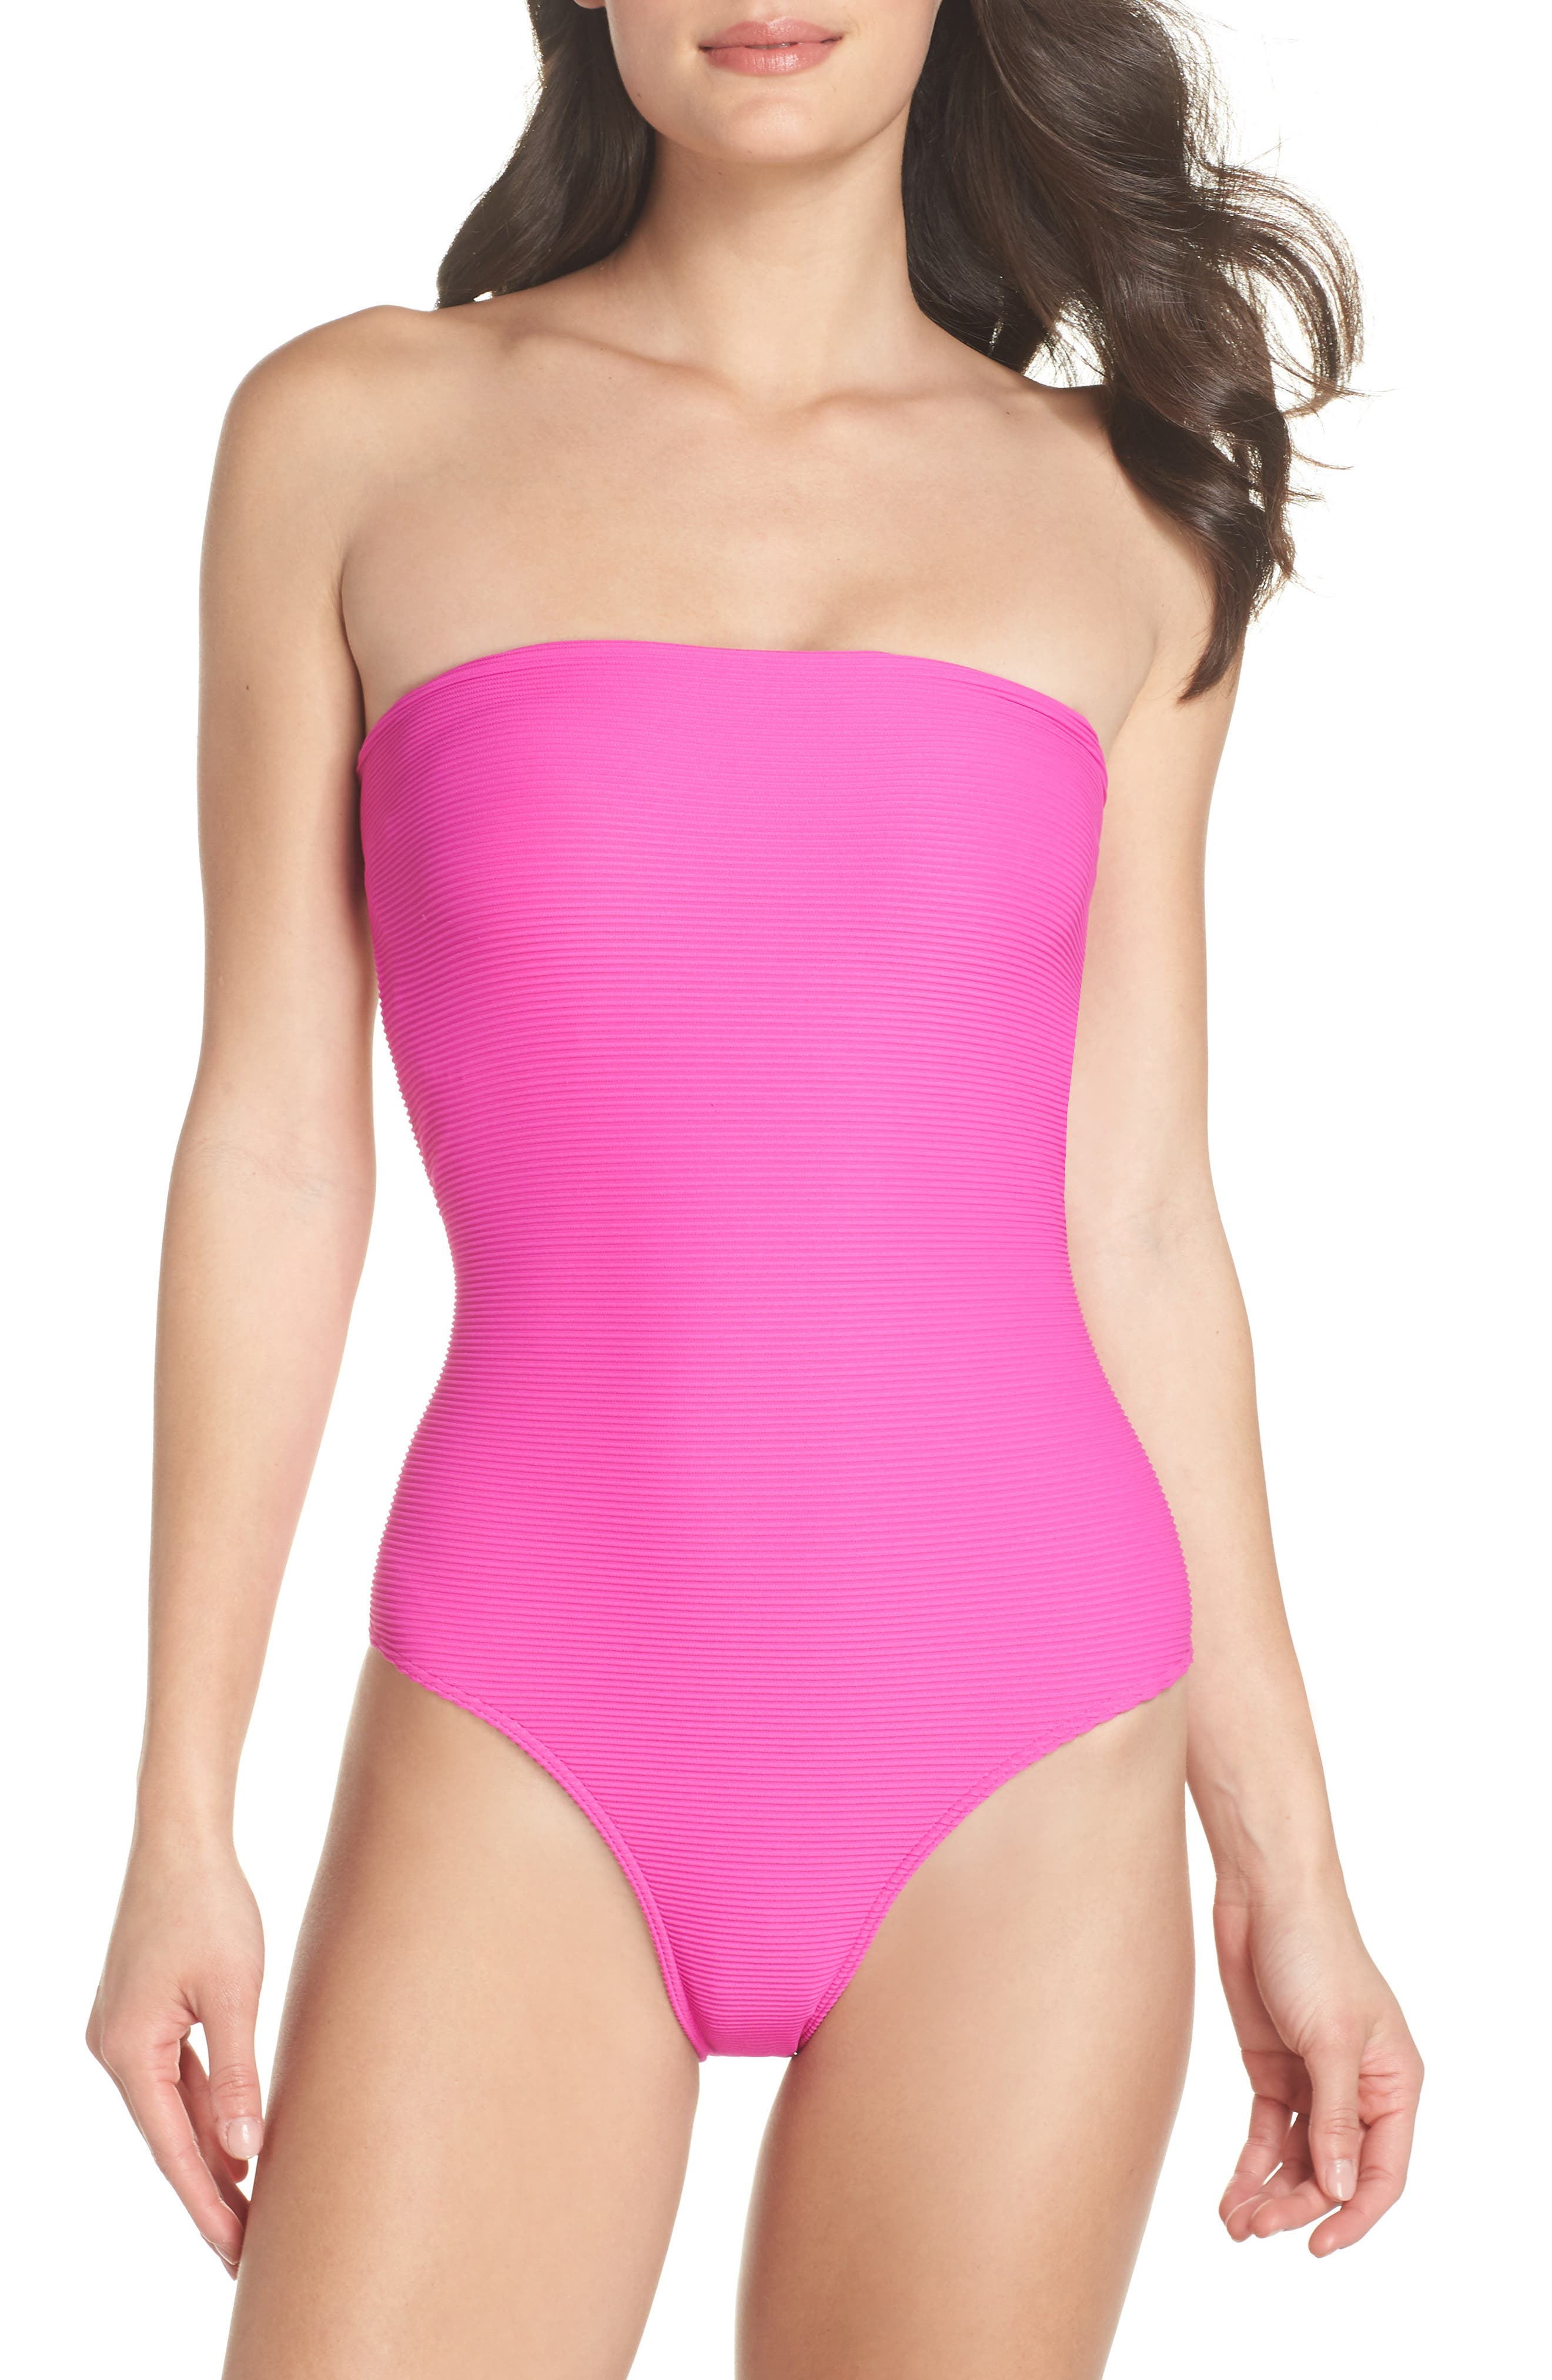 Tanlines Strapless One-Piece Swimsuit,                             Main thumbnail 1, color,                             Rebel Pink